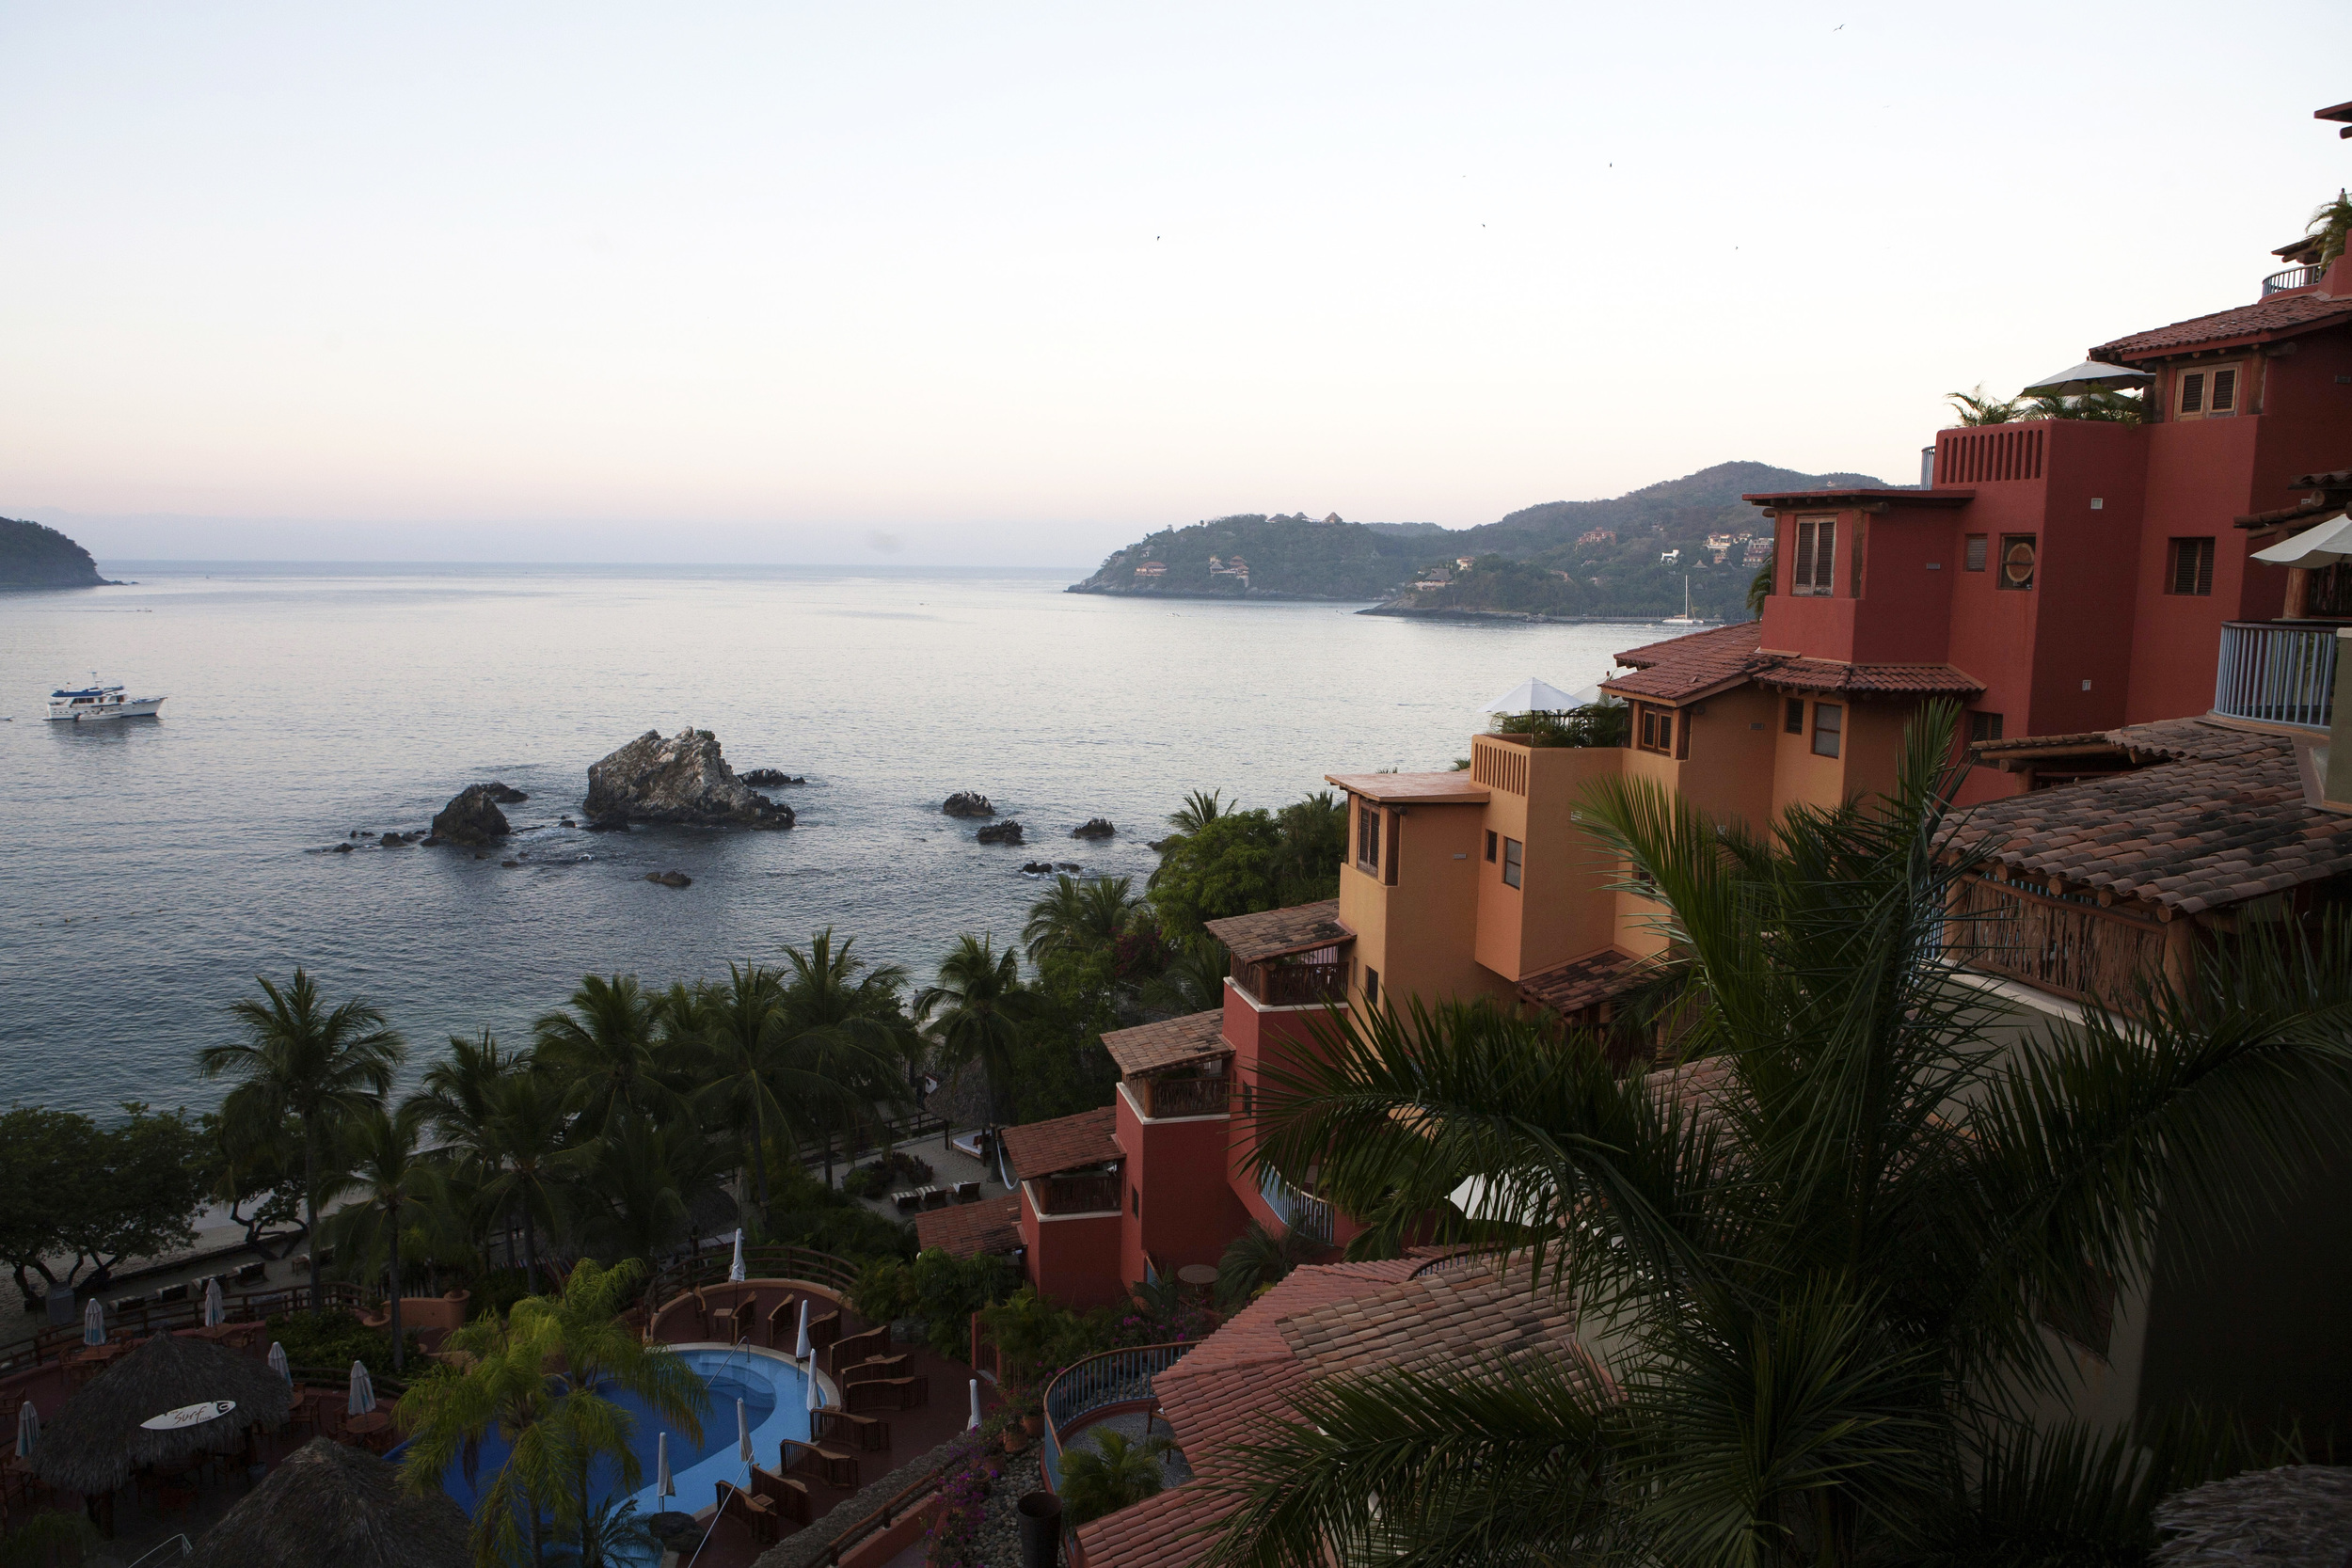 Perched on a hillside, Club Intrawest overlooks Zihuatanejo Bay,  famed for it's fishing village and the beach in the 1994 film Shawshank Redemption that Tim Robbins dreamed of escaping to in Mexico.  ©Gail Fisher